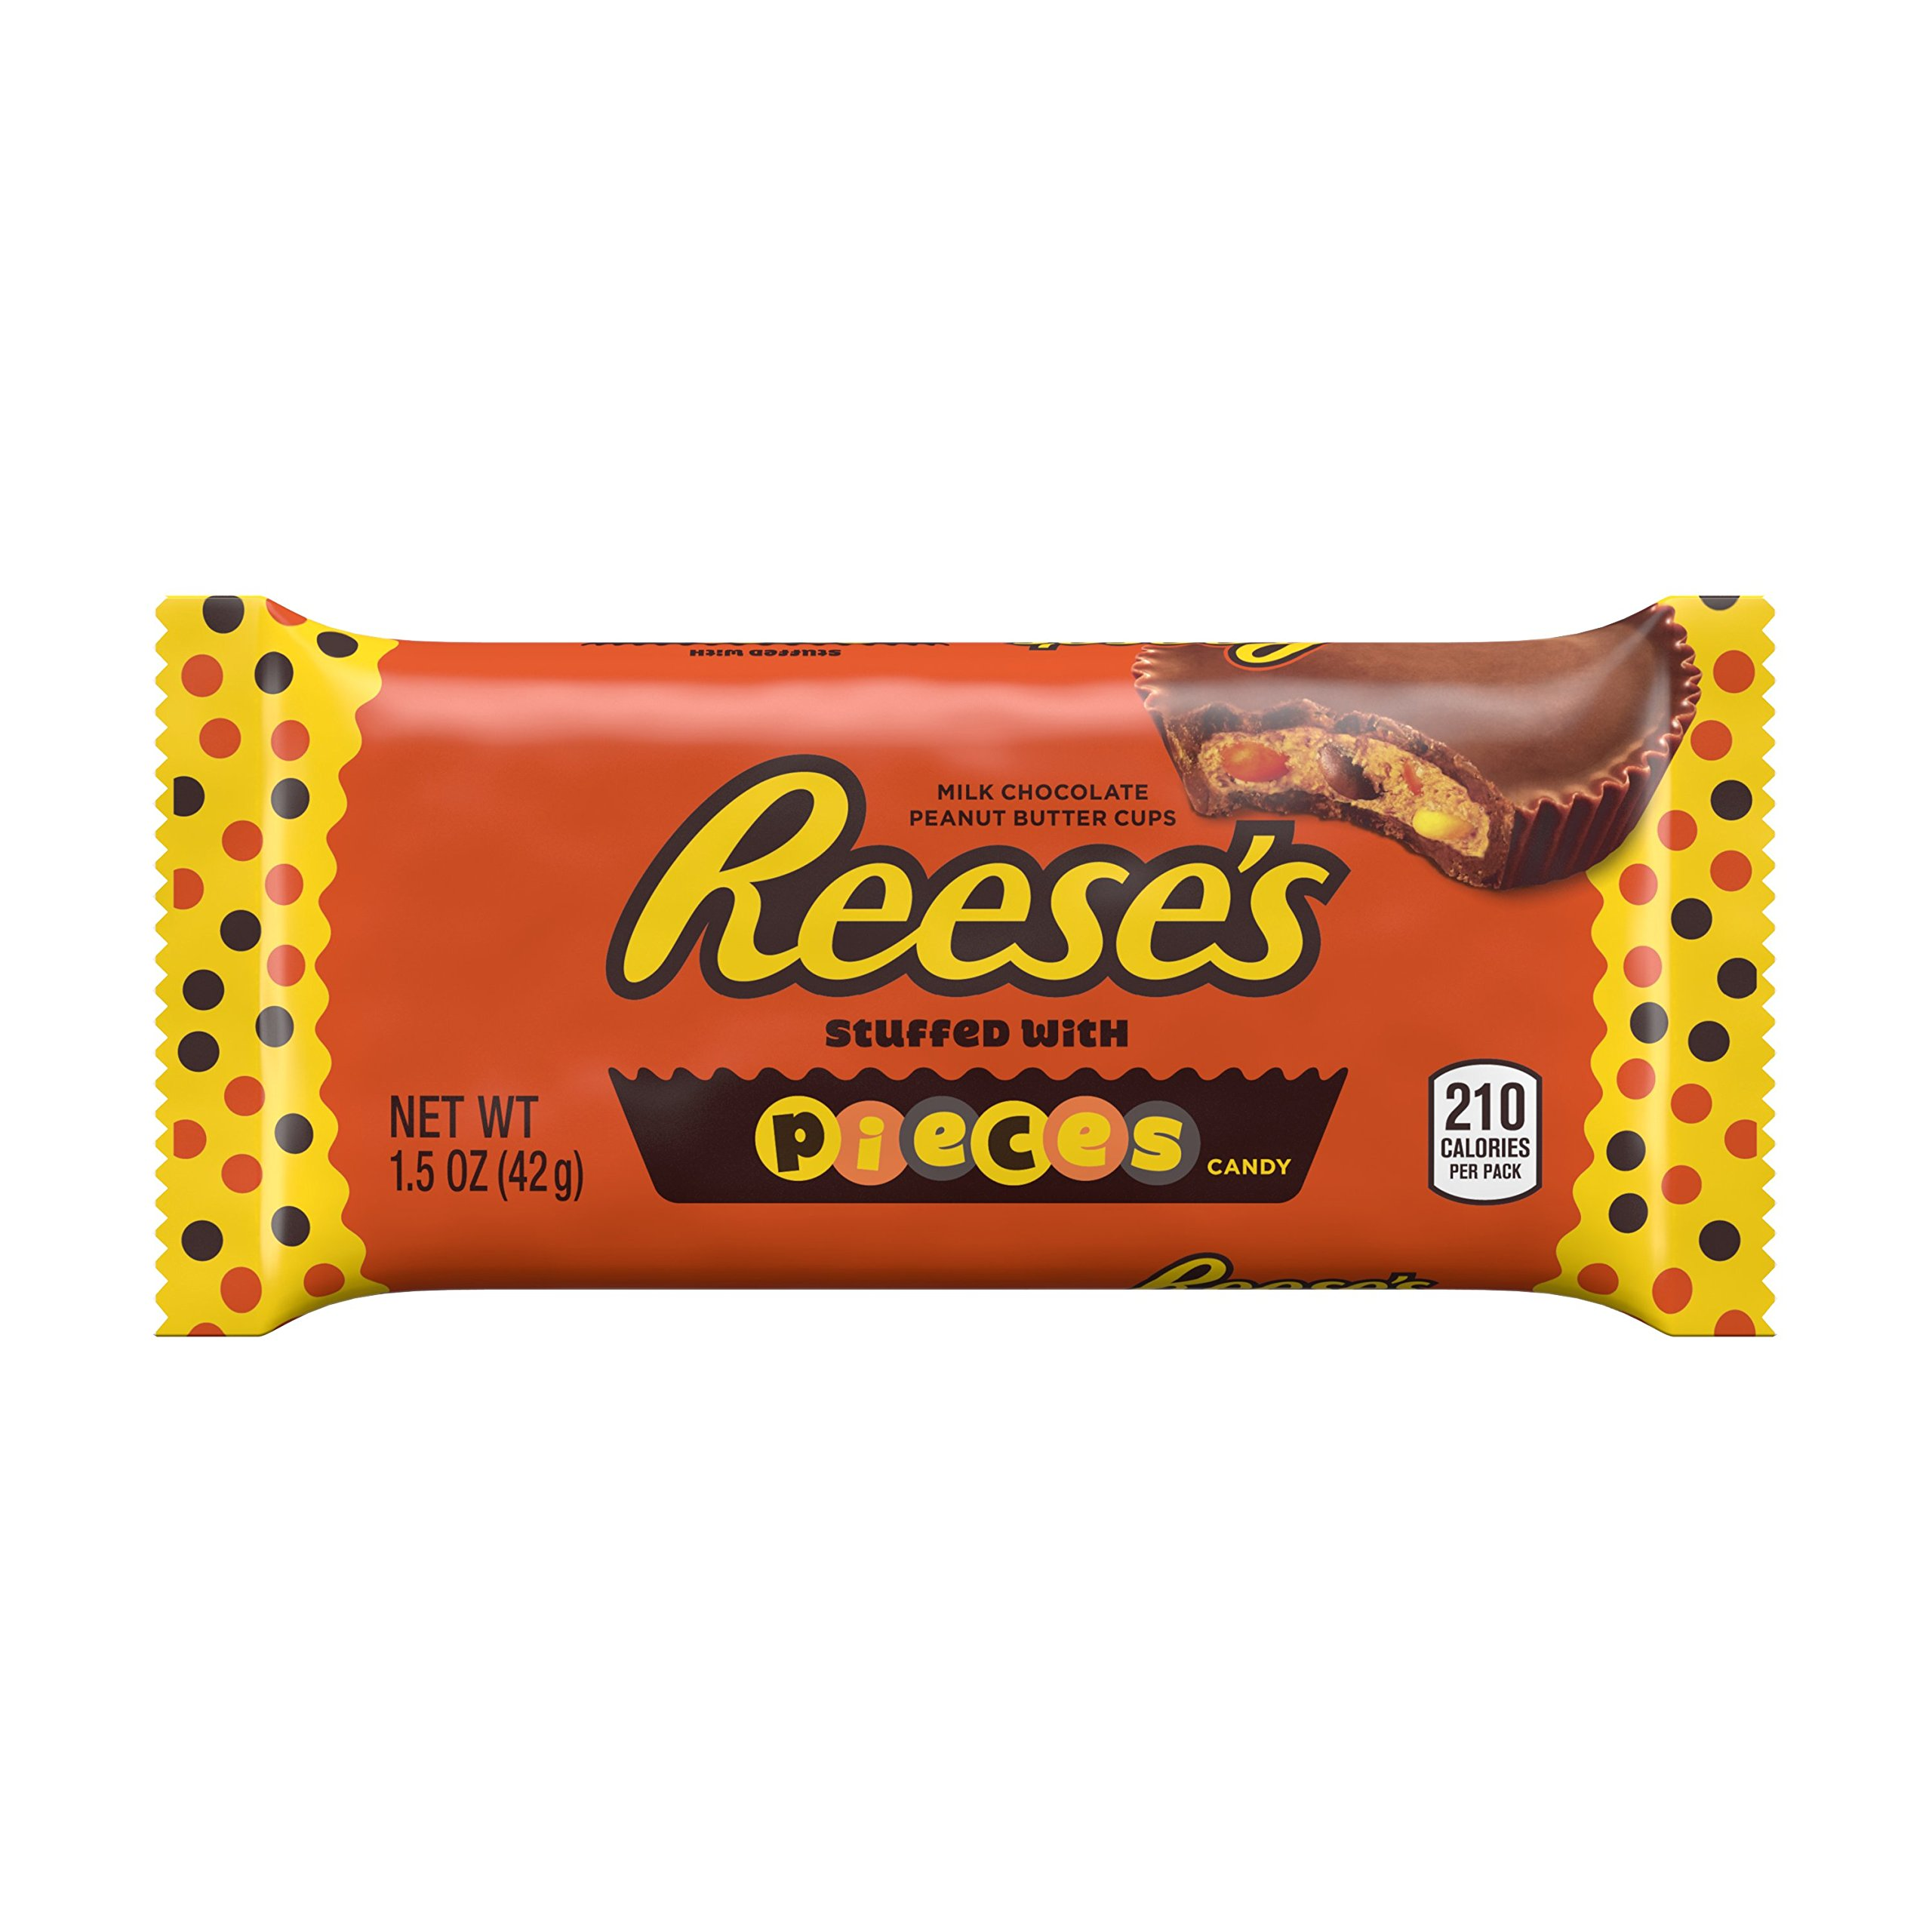 REESE'S Peanut Butter Cups, Chocolate Candy stuffed with Reese's Pieces (Pack of 24)